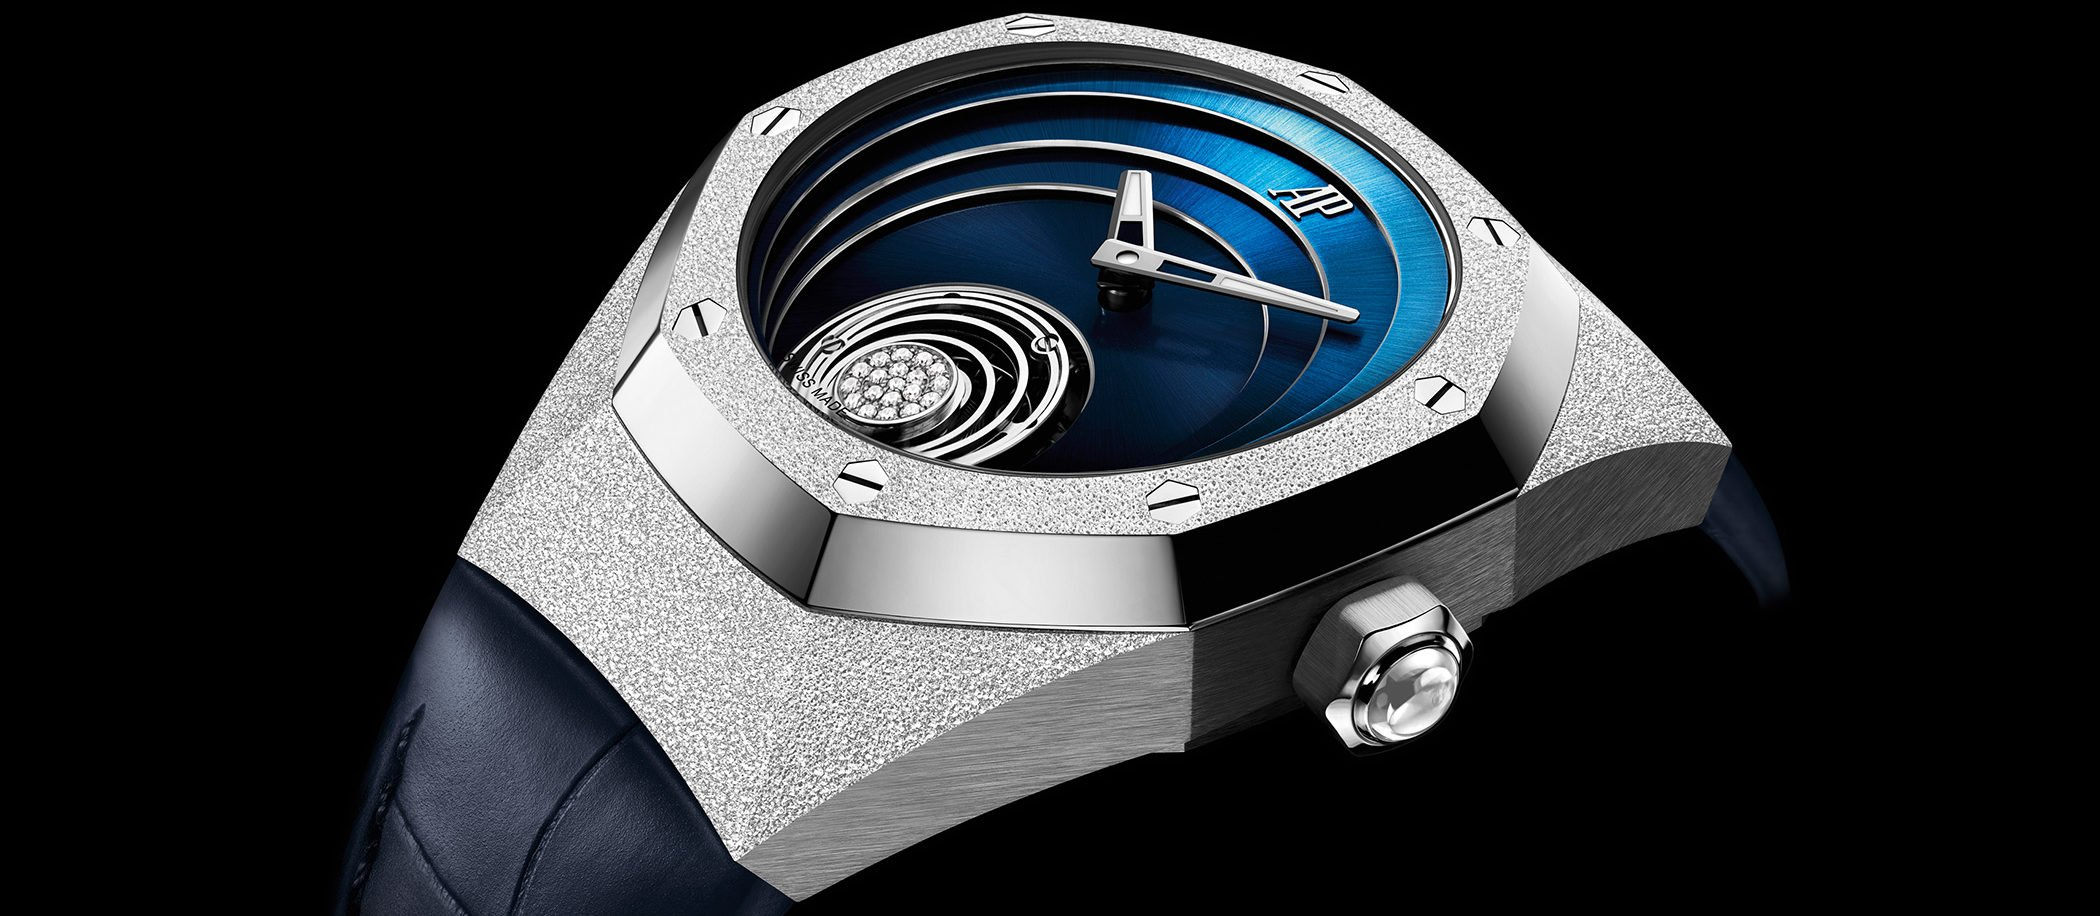 Audemars Piguet Royal Oak Concept Flying Tourbillon